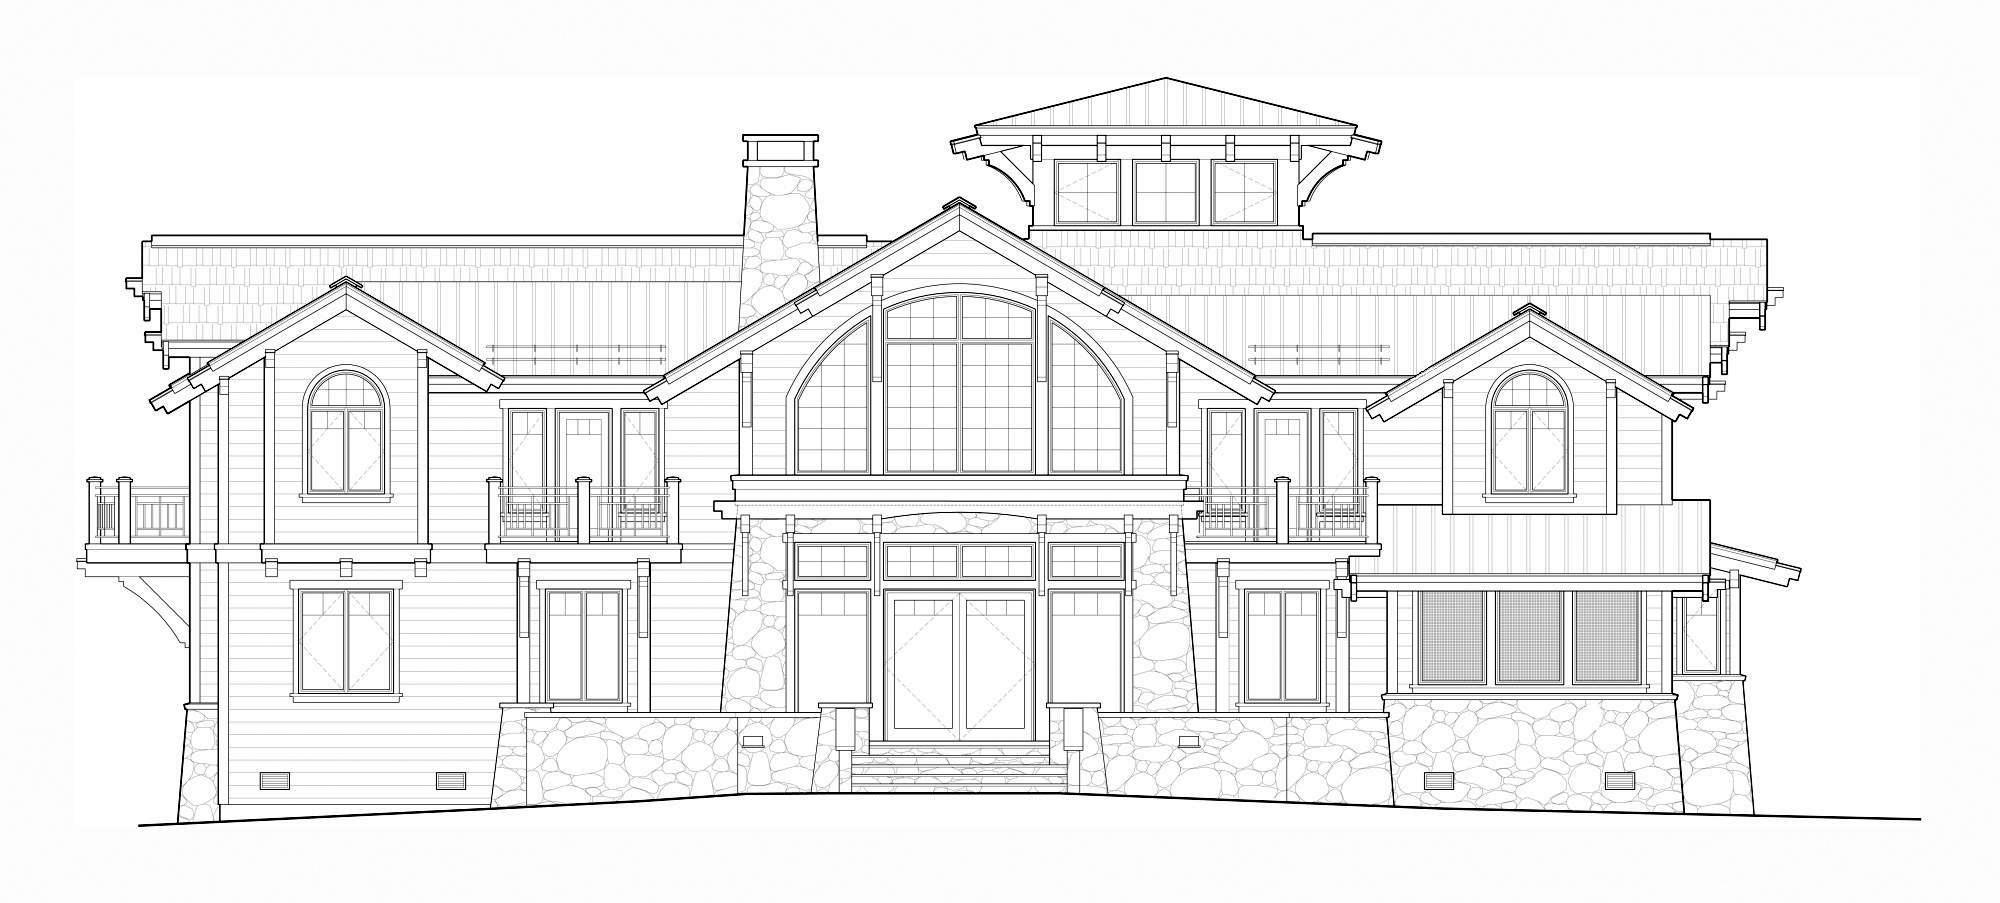 Front Elevation Of Residential Building In Autocad : Idaho mountain architects hendricks architecture